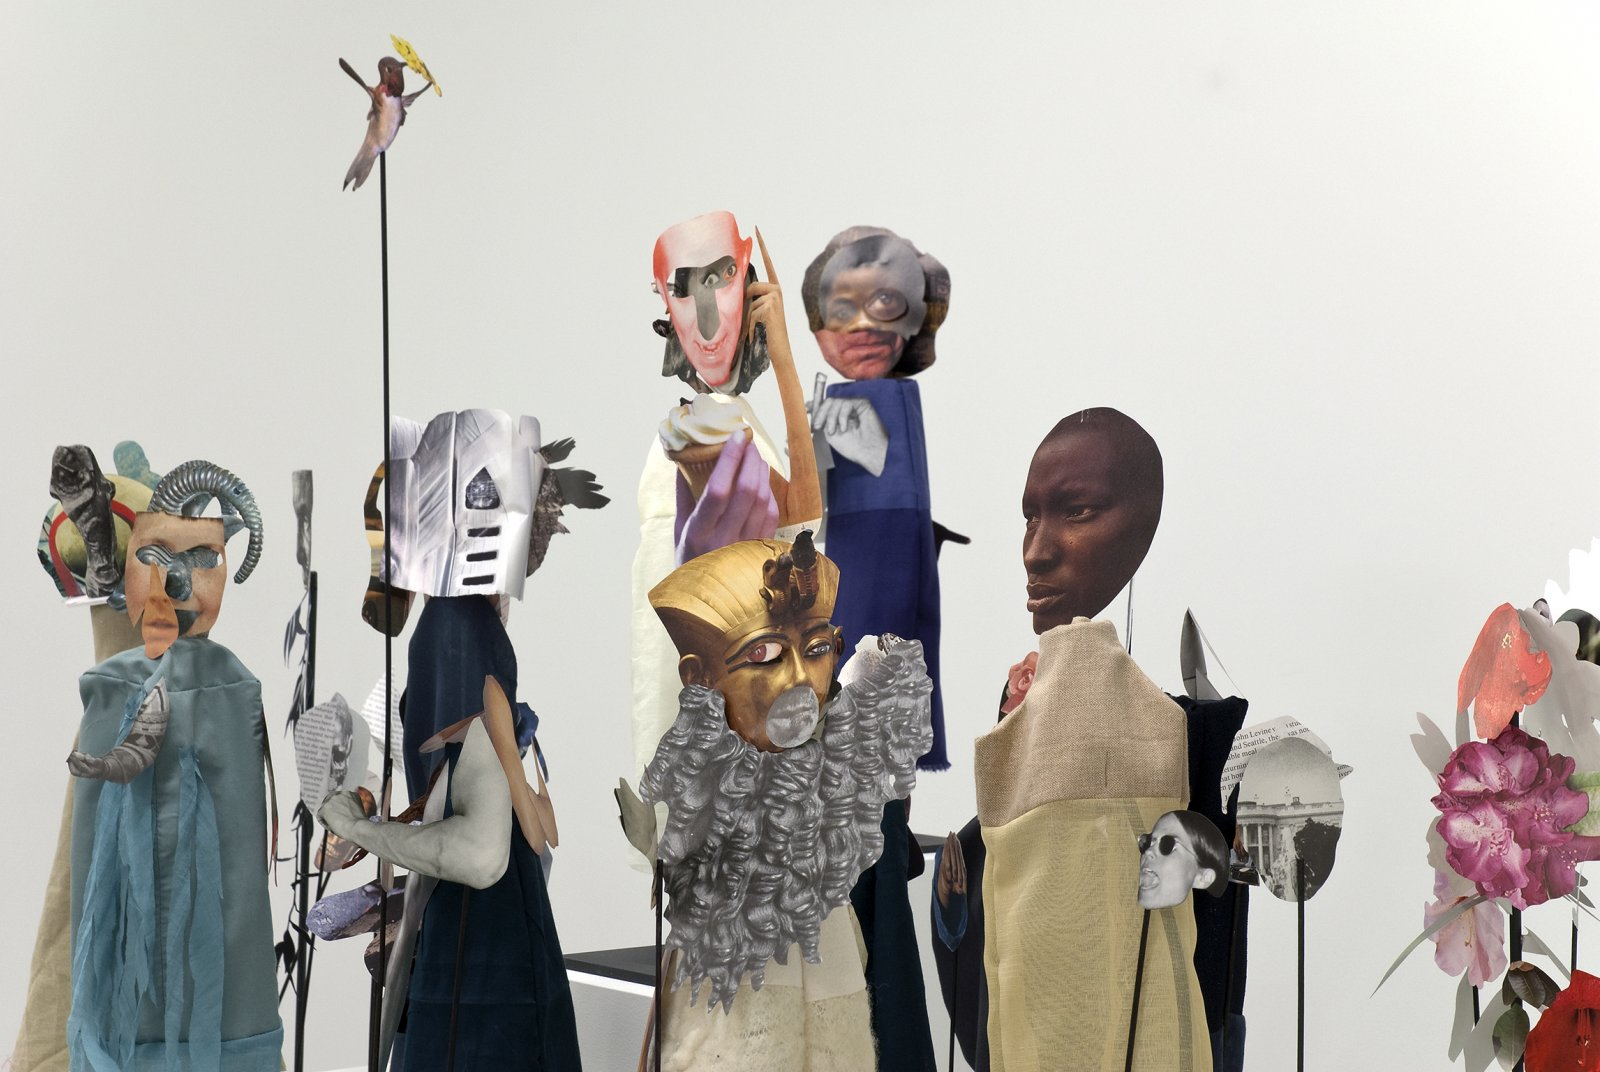 Geoffrey Farmer, The Surgeon and the Photographer, 2009, paper, textile, wood, metal, 365 figures, each figure approximately 18 x 5 x 5 in. (45 x 13 x 13 cm). Installation view, Catriona Jeffries, 2010 by Geoffrey Farmer